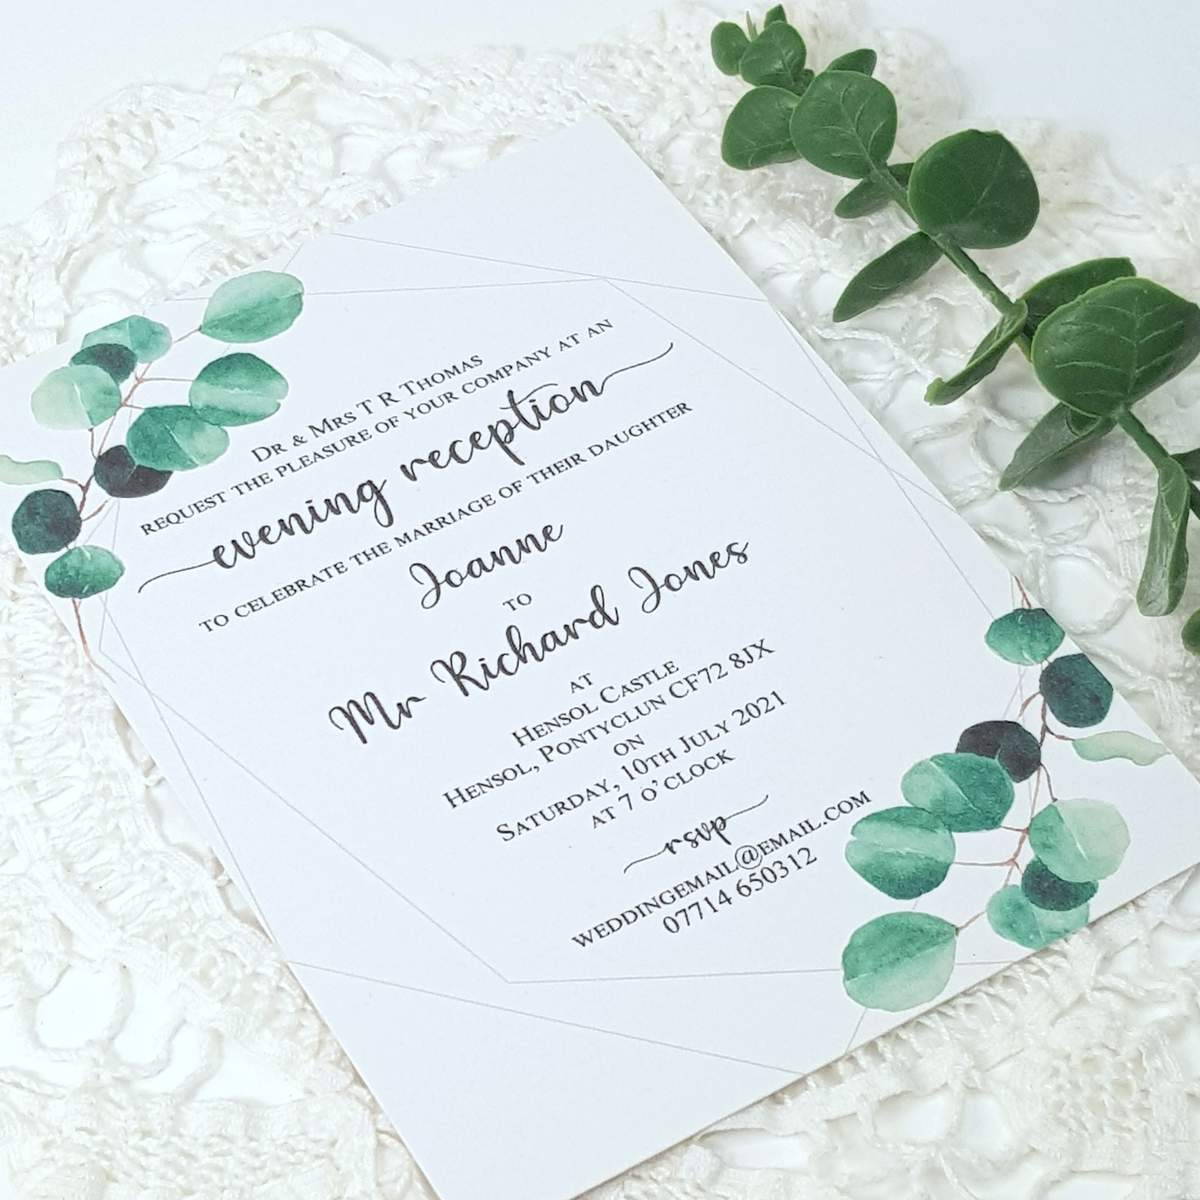 A flat evening wedding invitation with a modern calligraphy style font and eucalyptus design accents.